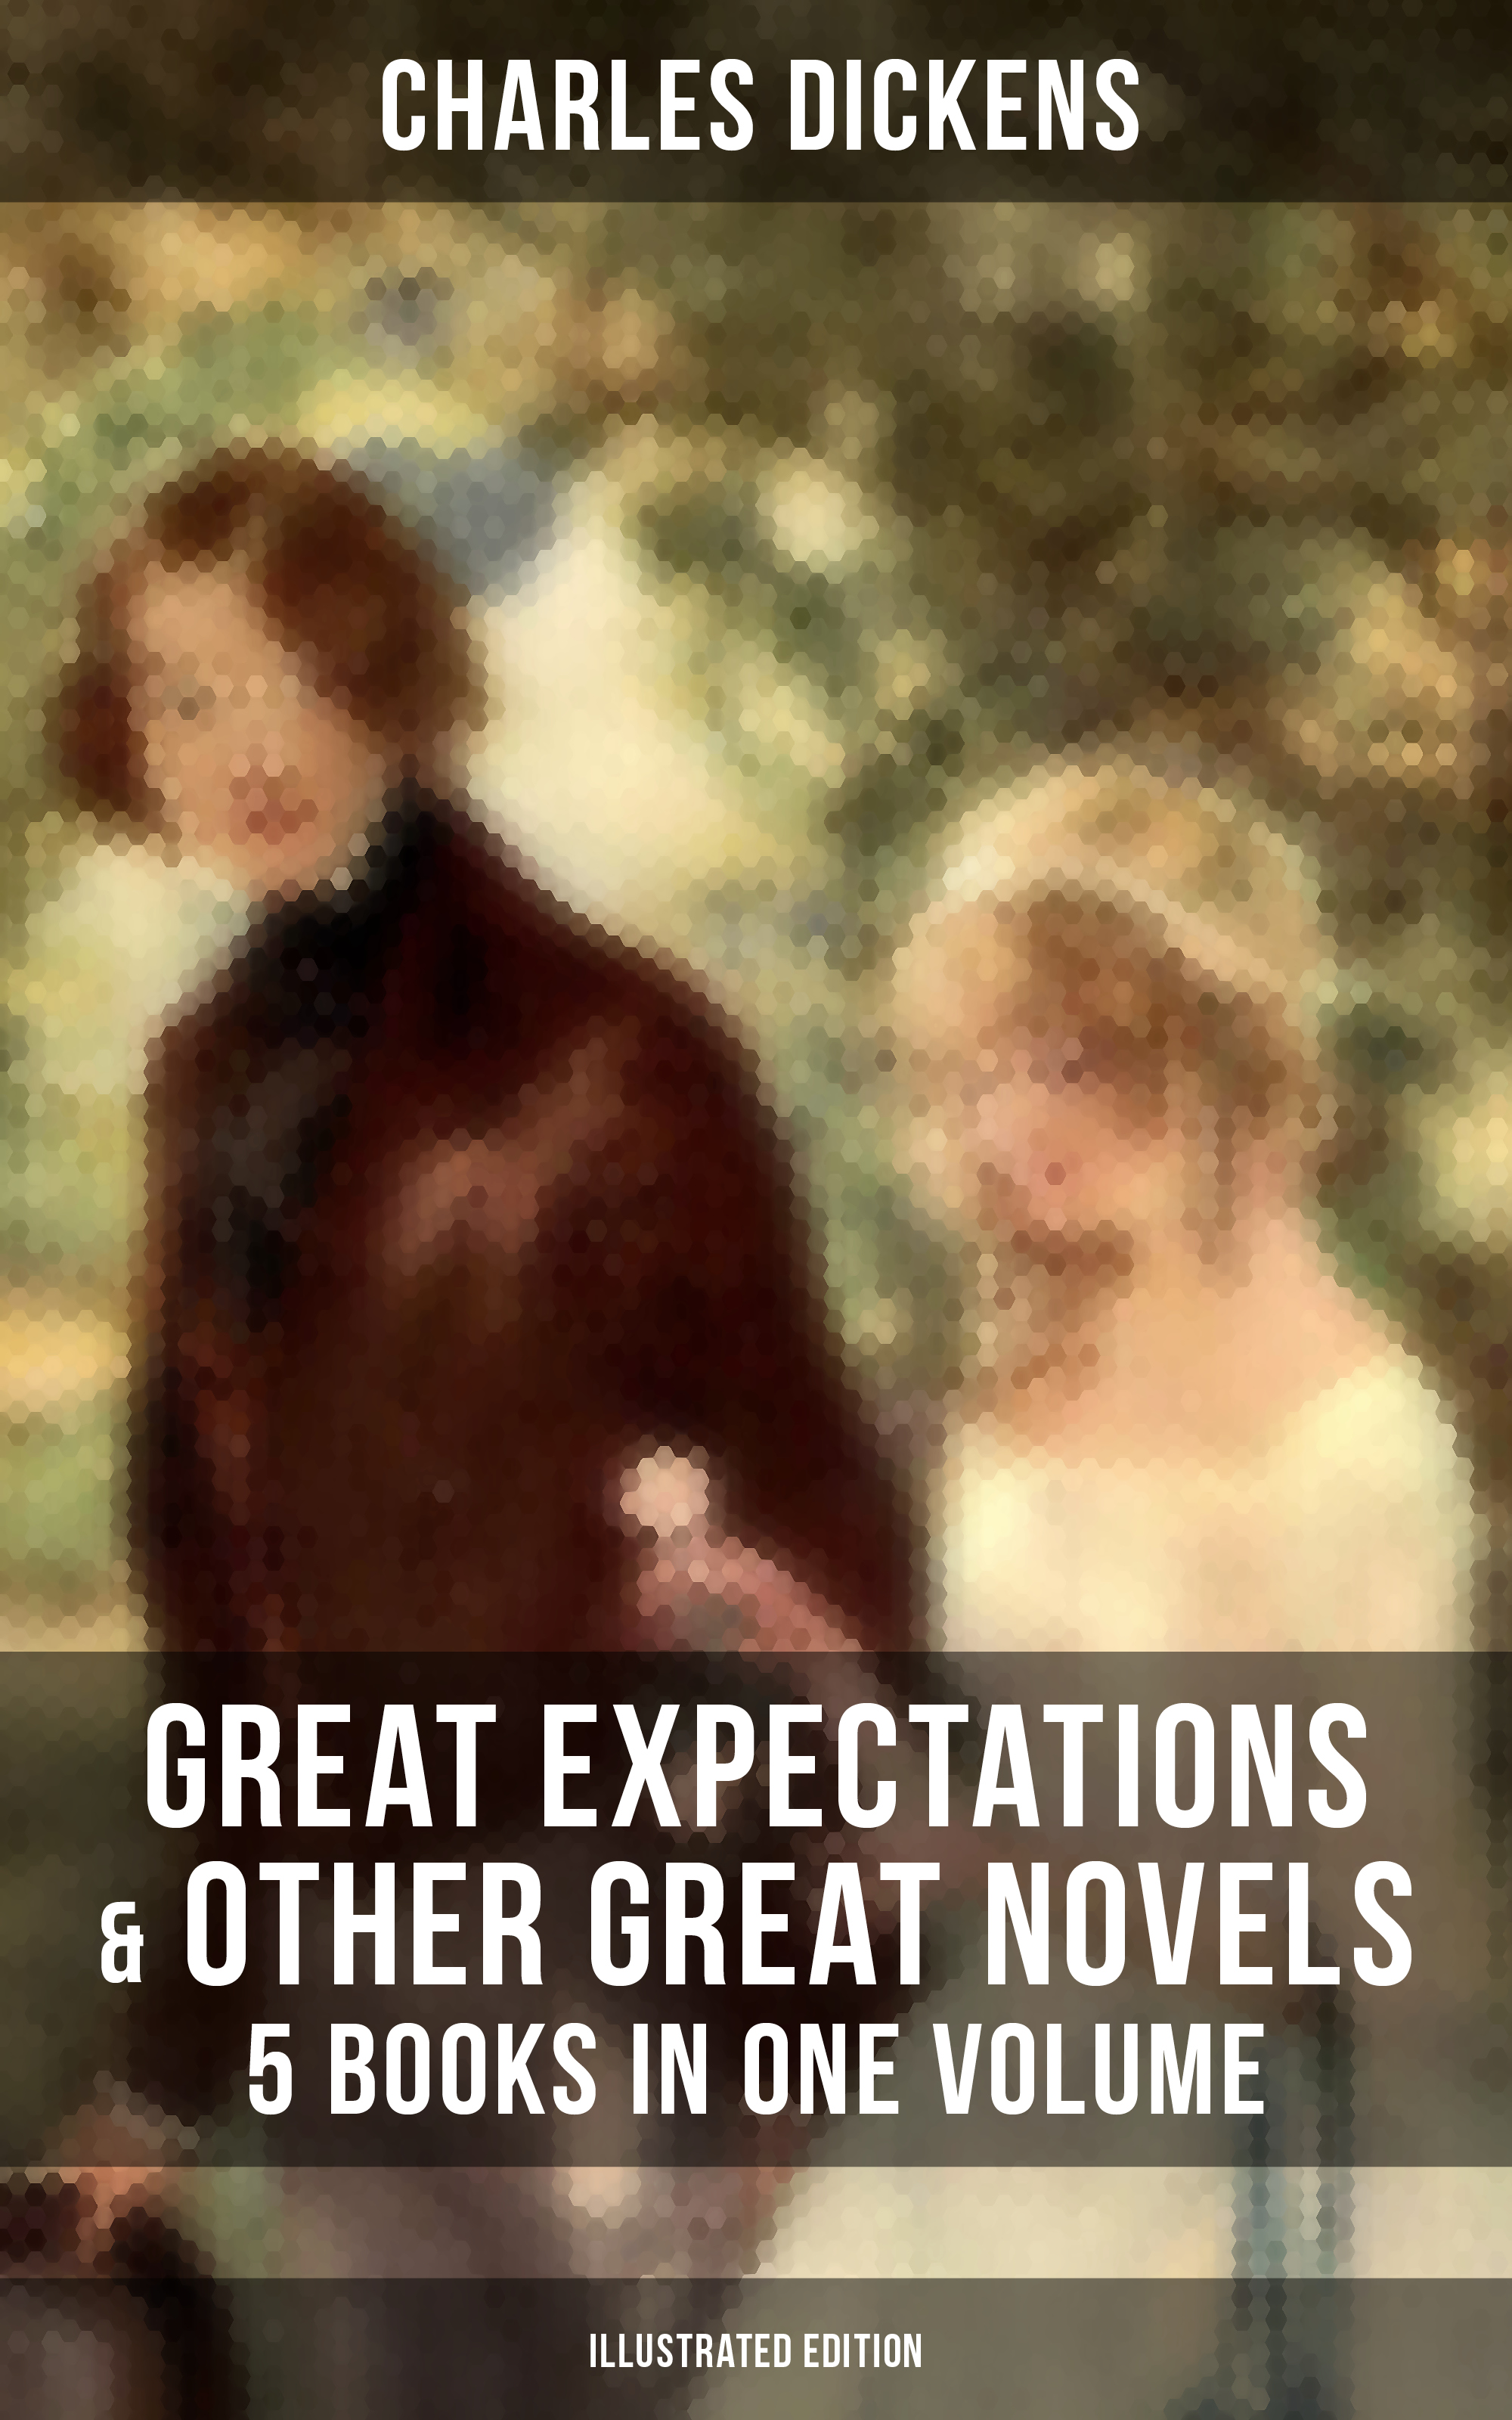 Charles Dickens Great Expectations & Other Great Dickens' Novels - 5 Books in One Volume (Illustrated Edition) dickens c great expectations